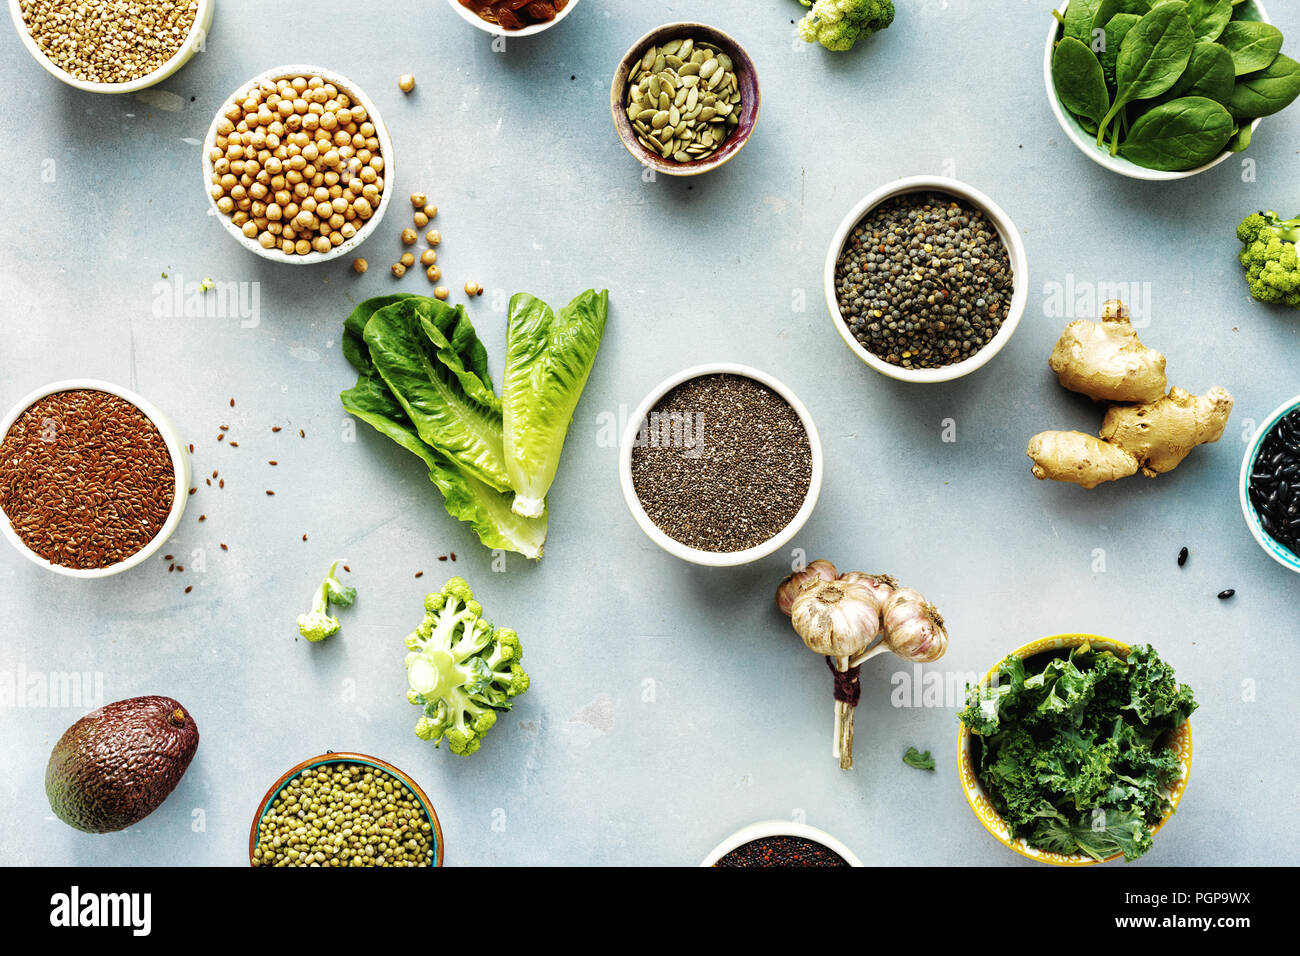 Set raw seeds, cereals, beans, superfoods and green vegetables on blue stone background top view. vegetarian or diet food concept - Stock Image